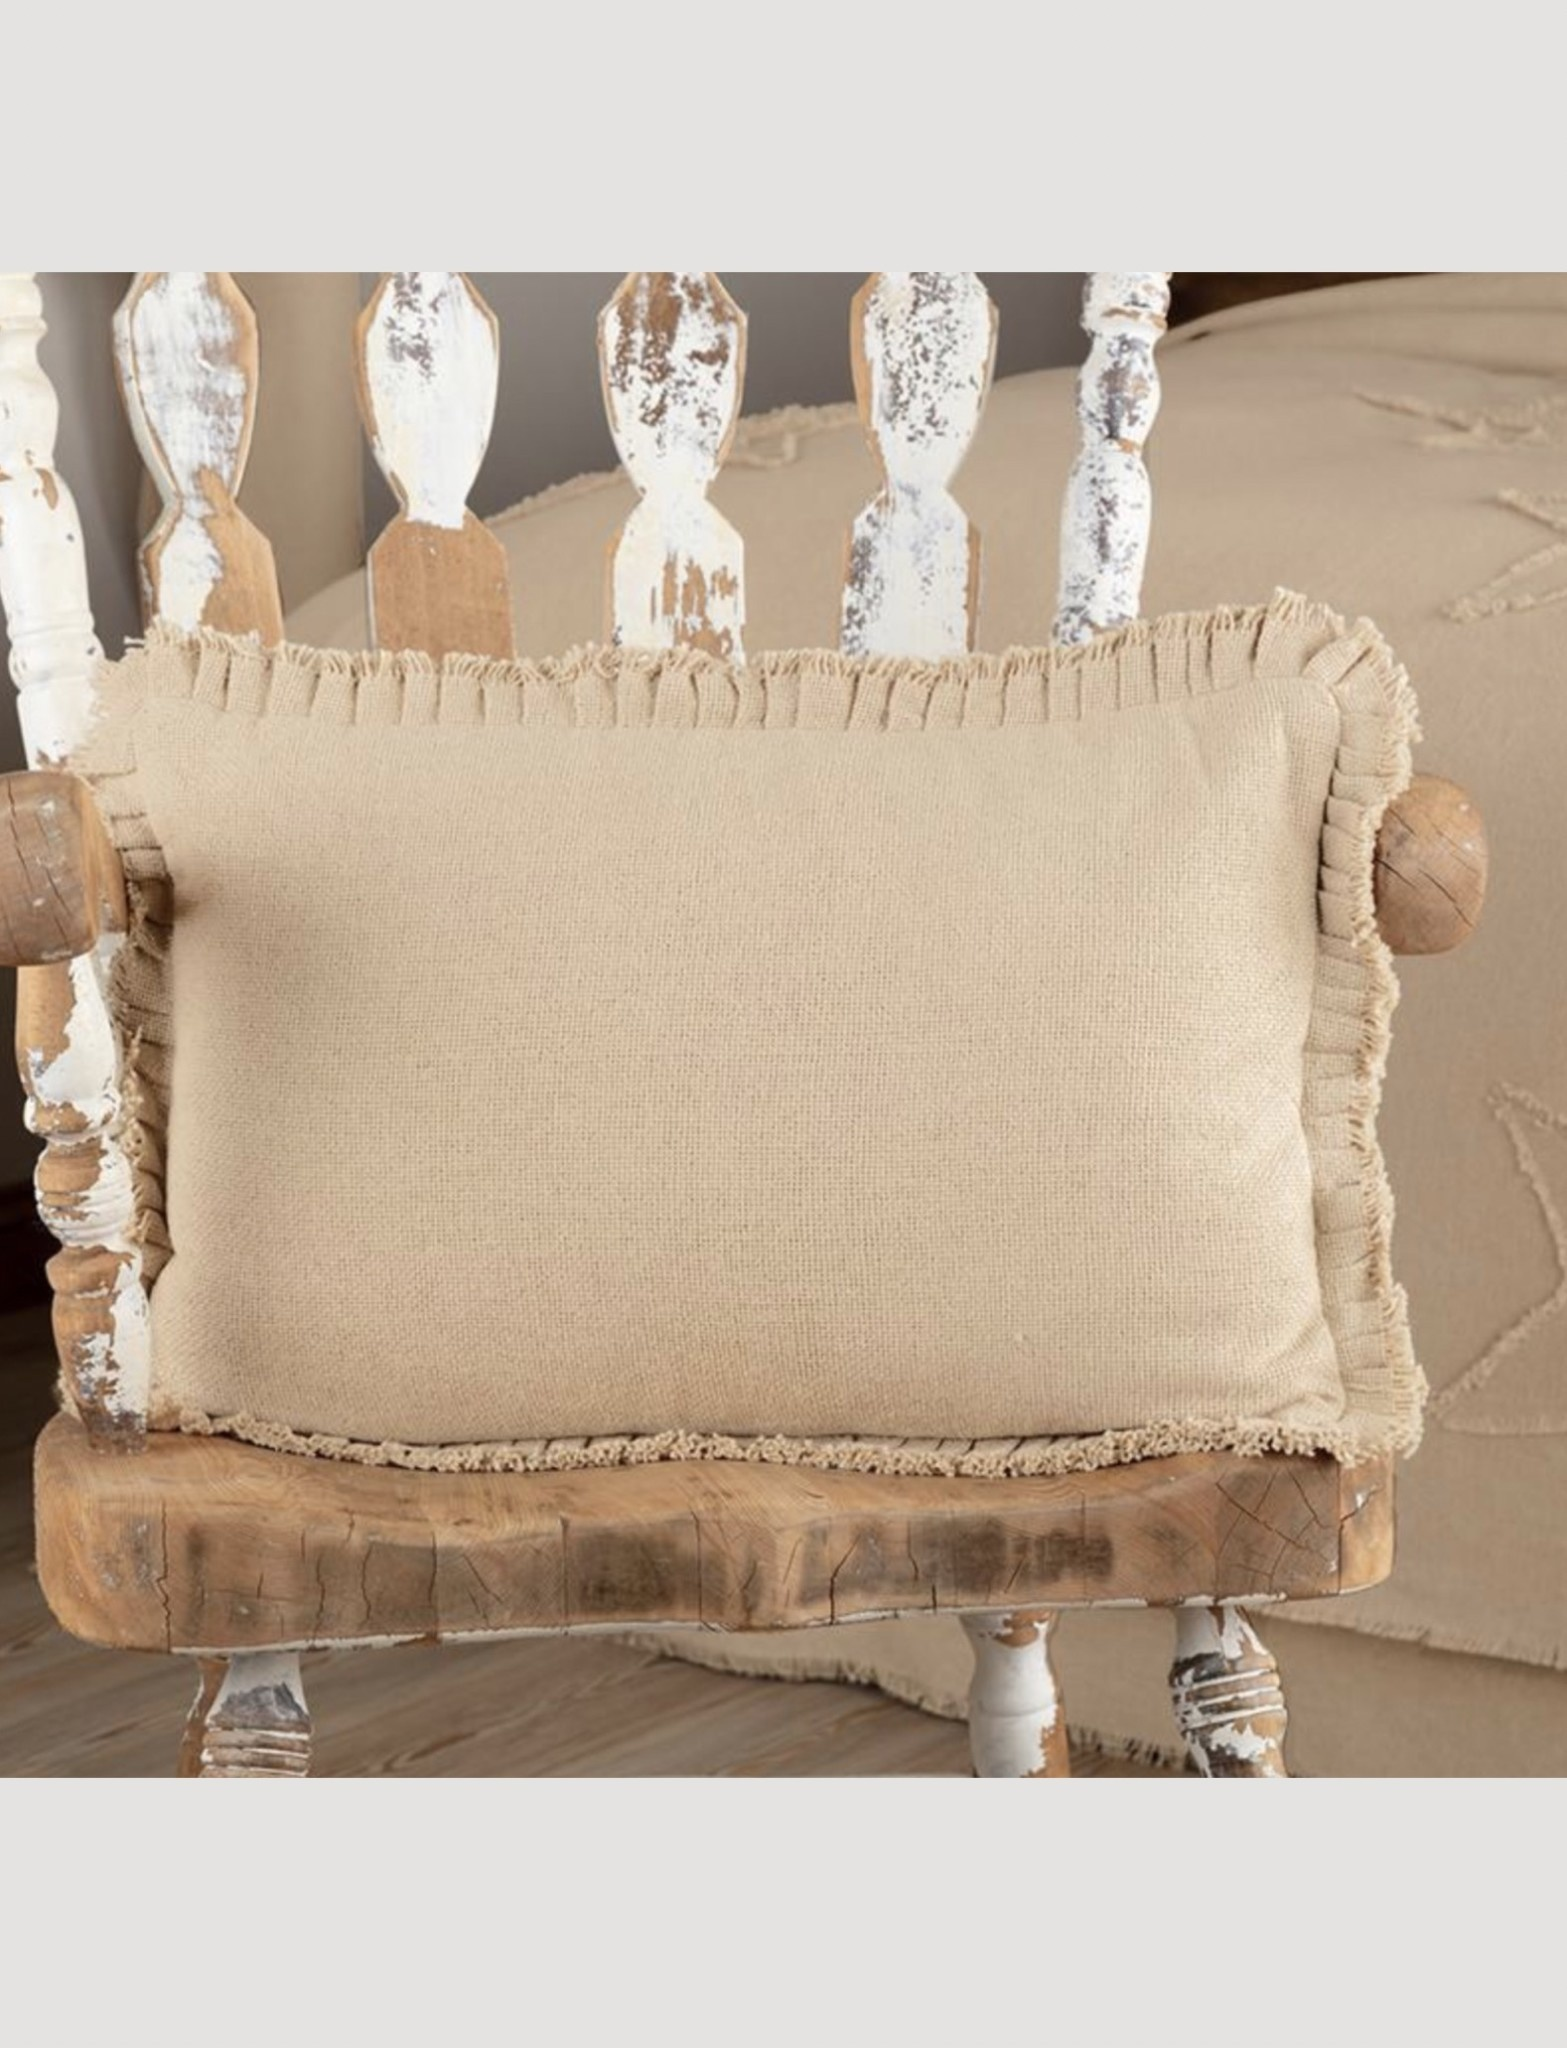 VHC Brands Burlap Vintage Pillow w/ Fringed Ruffle